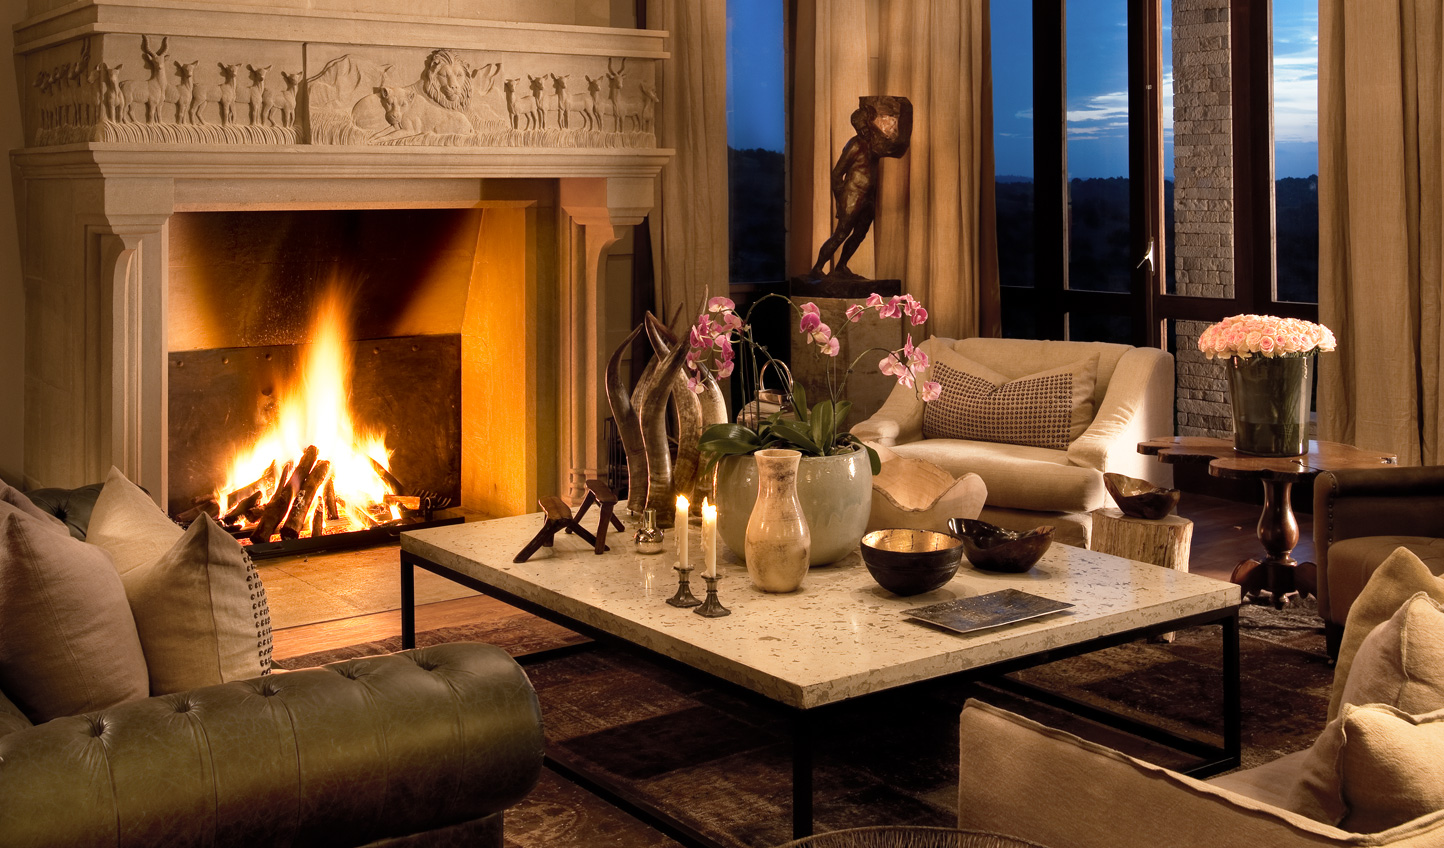 Cosy up by the fire with a nightcap